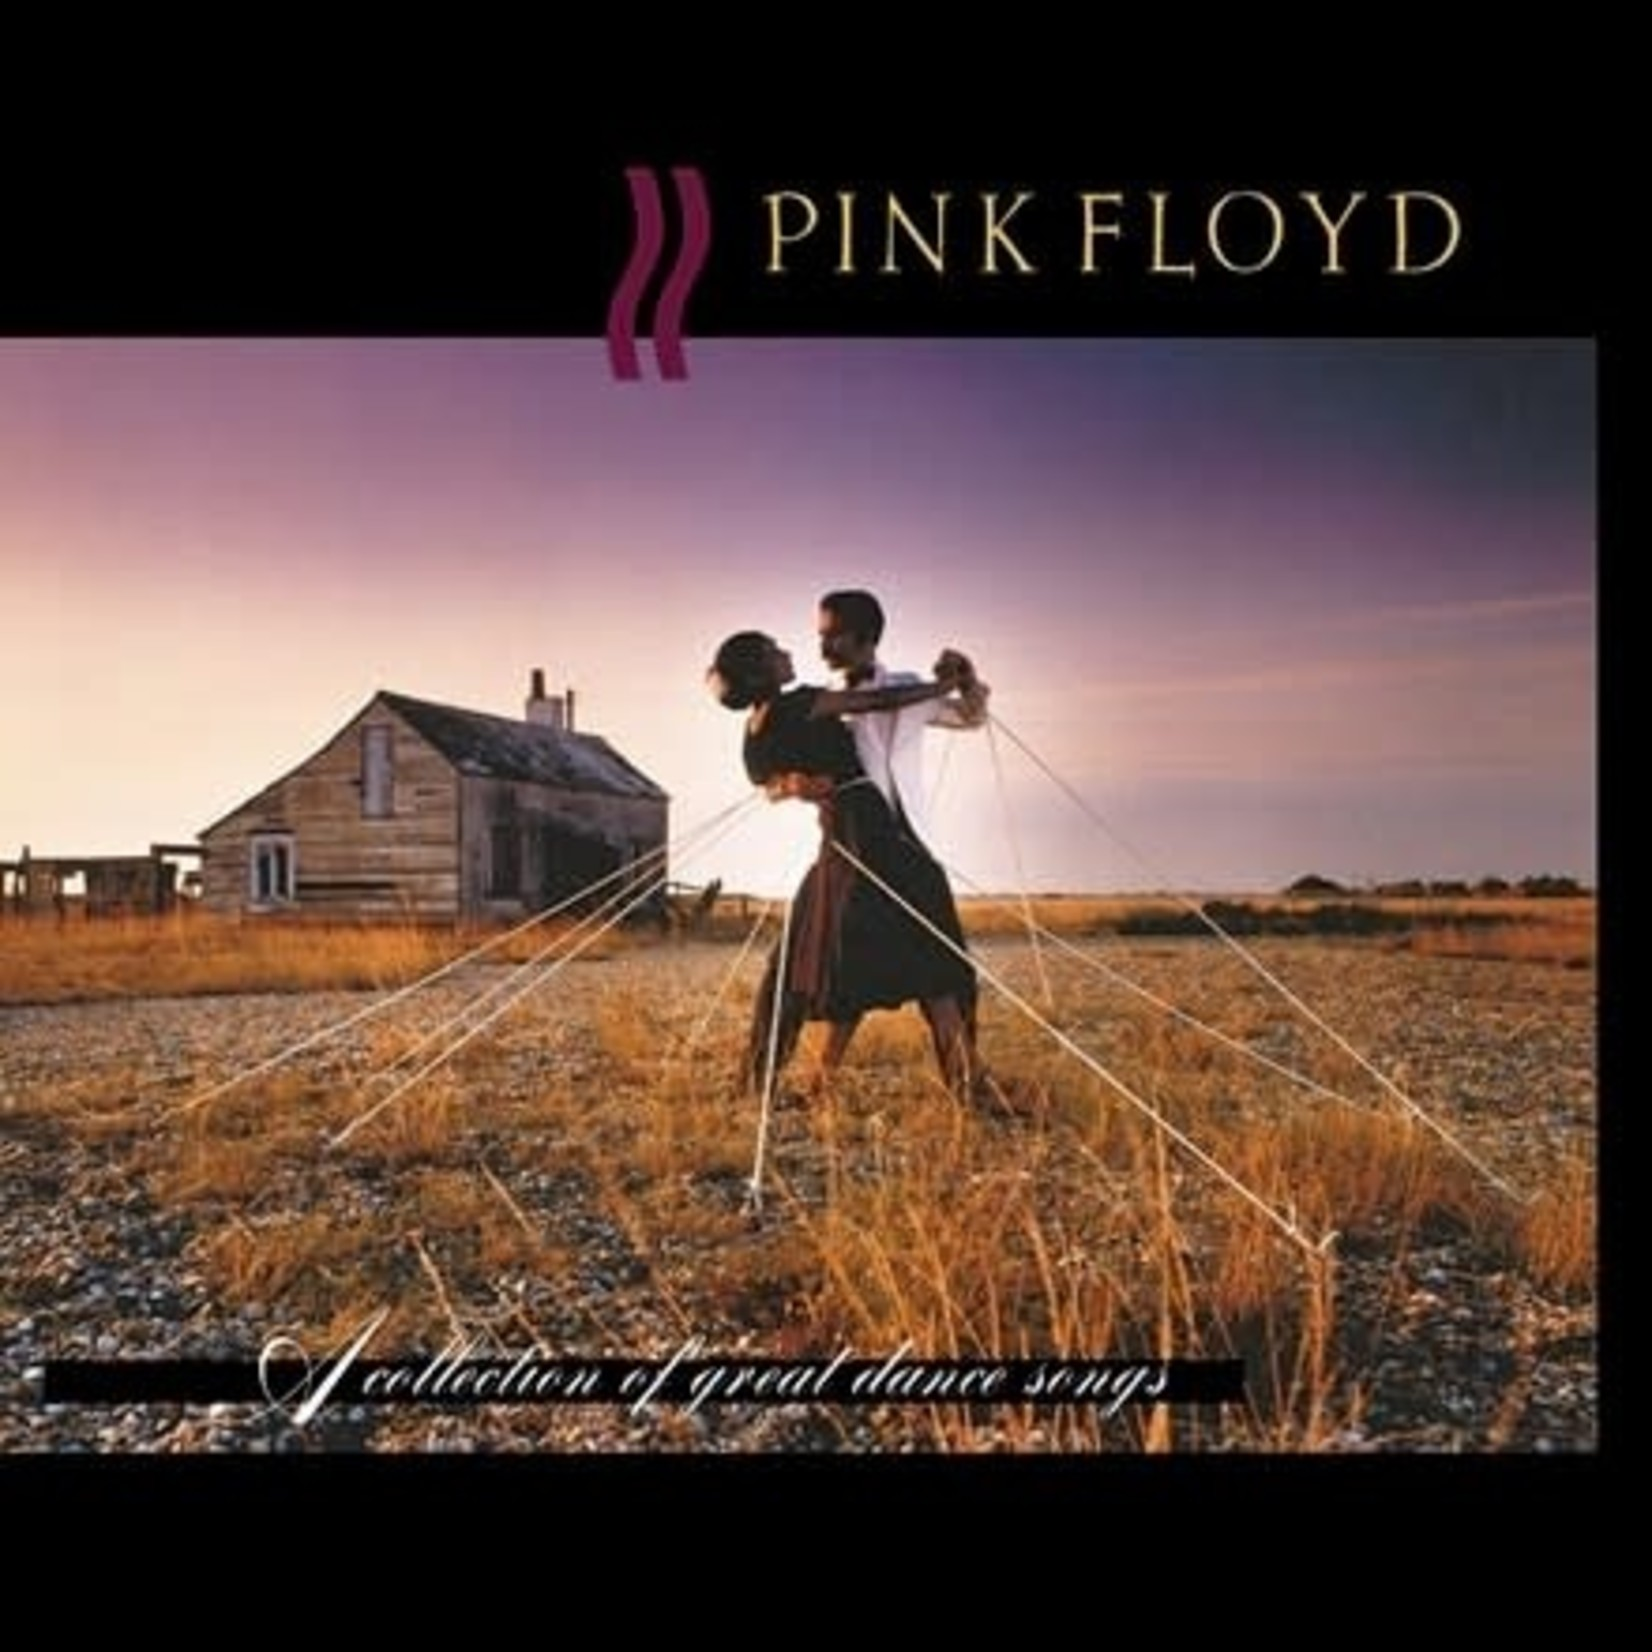 [Vintage] Pink Floyd: A Collection of Great Dance Songs